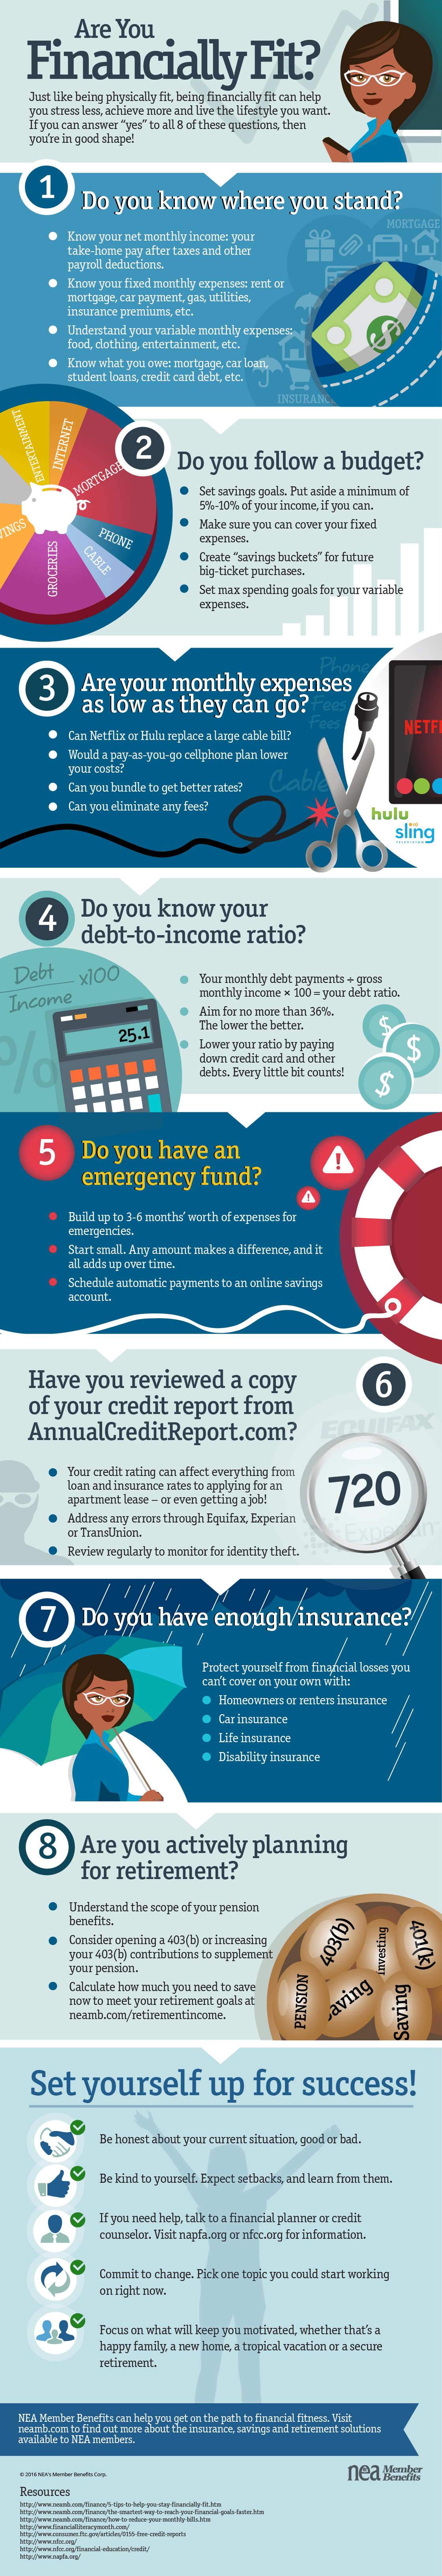 Are You Financially Fit Infographic